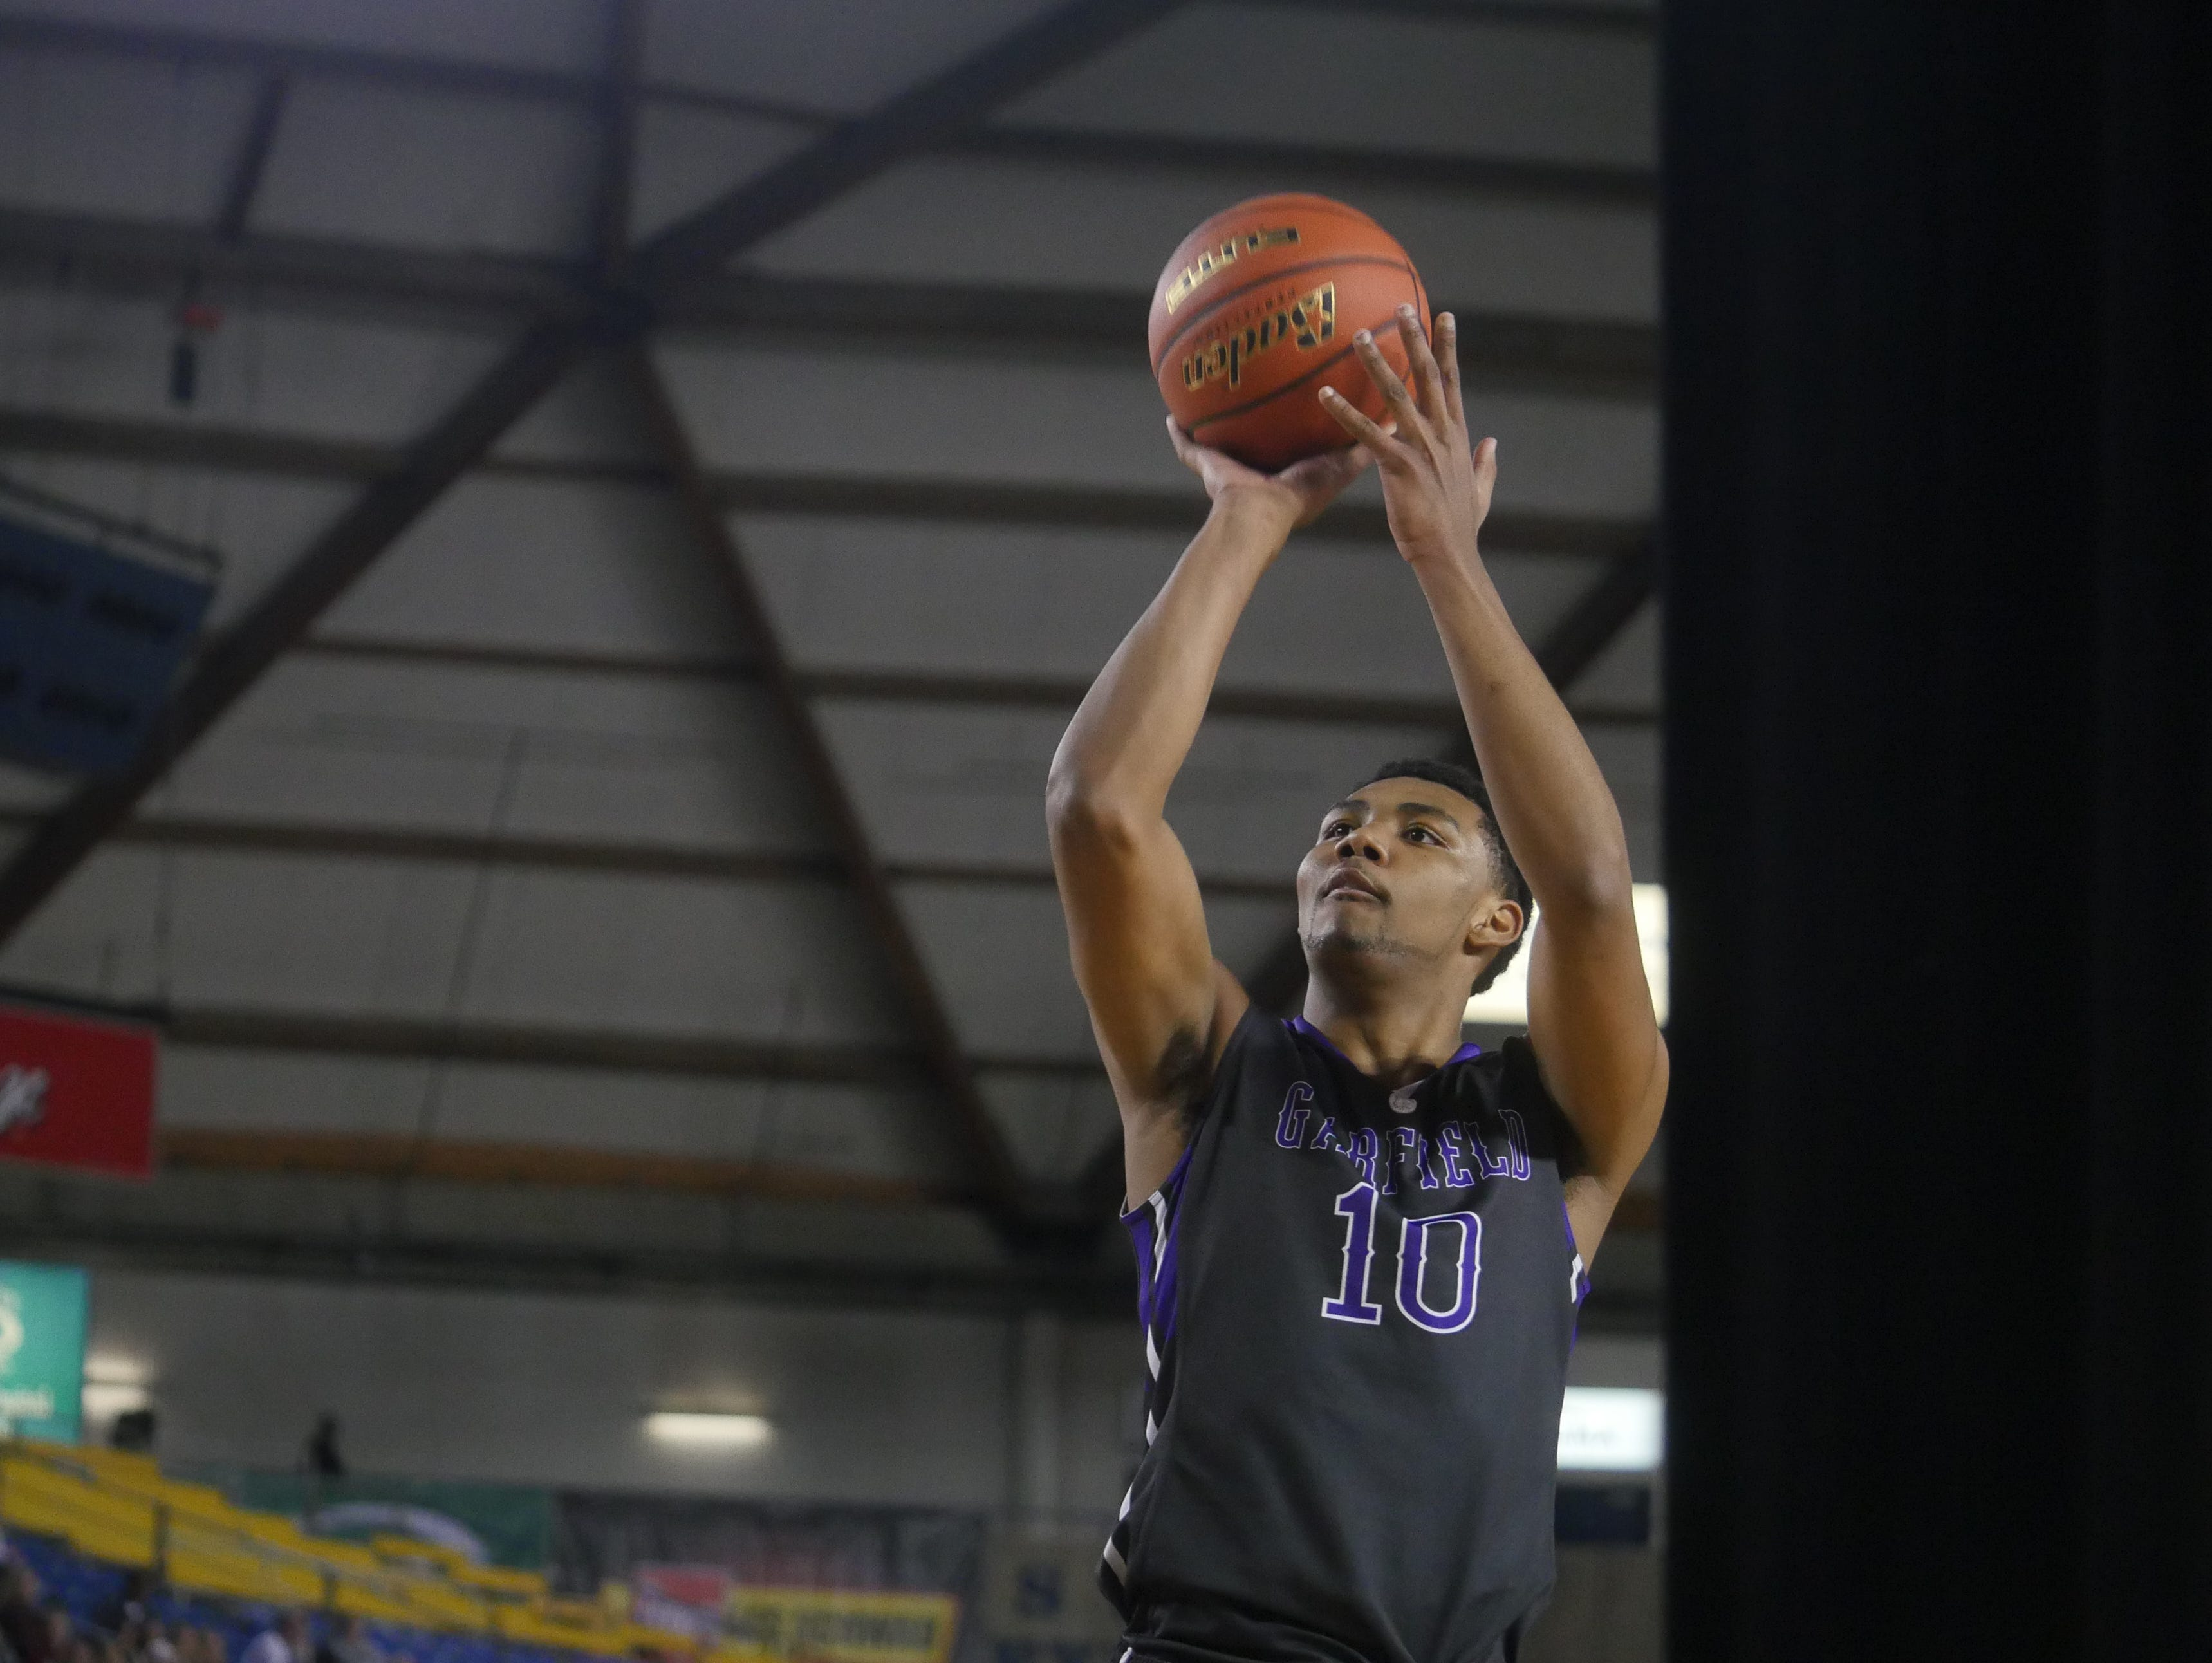 Garfield wing Alfonso Anderson at the free-throw line during the 2014 state basketball tournament.